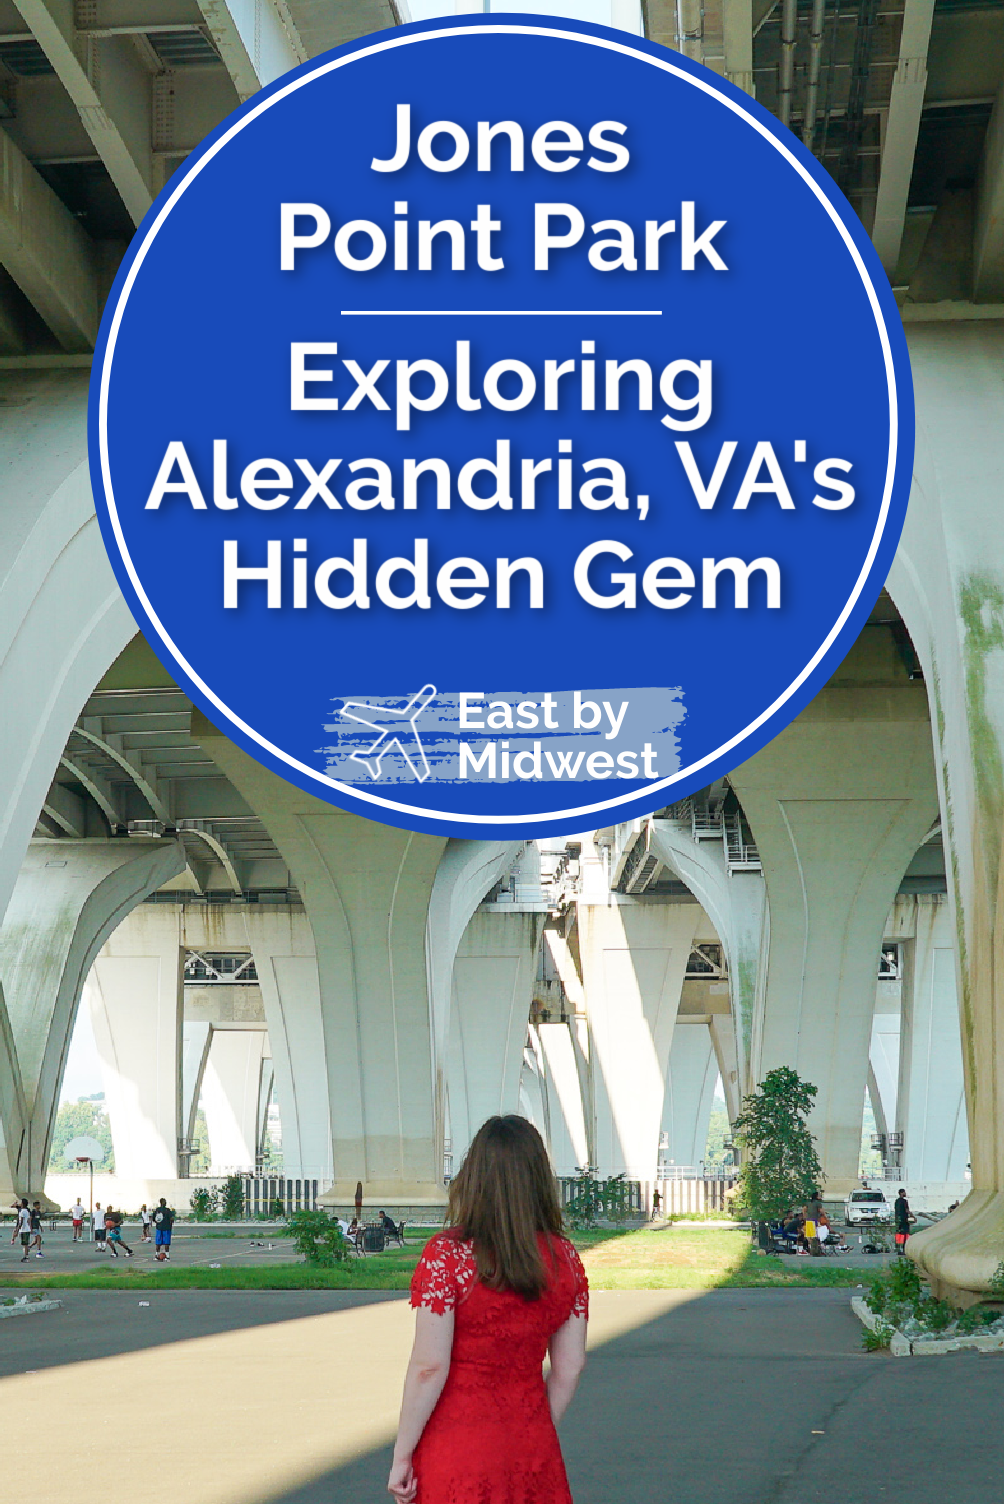 Jones Point Park - What You Need to Know About Alexandria's Hidden Gem